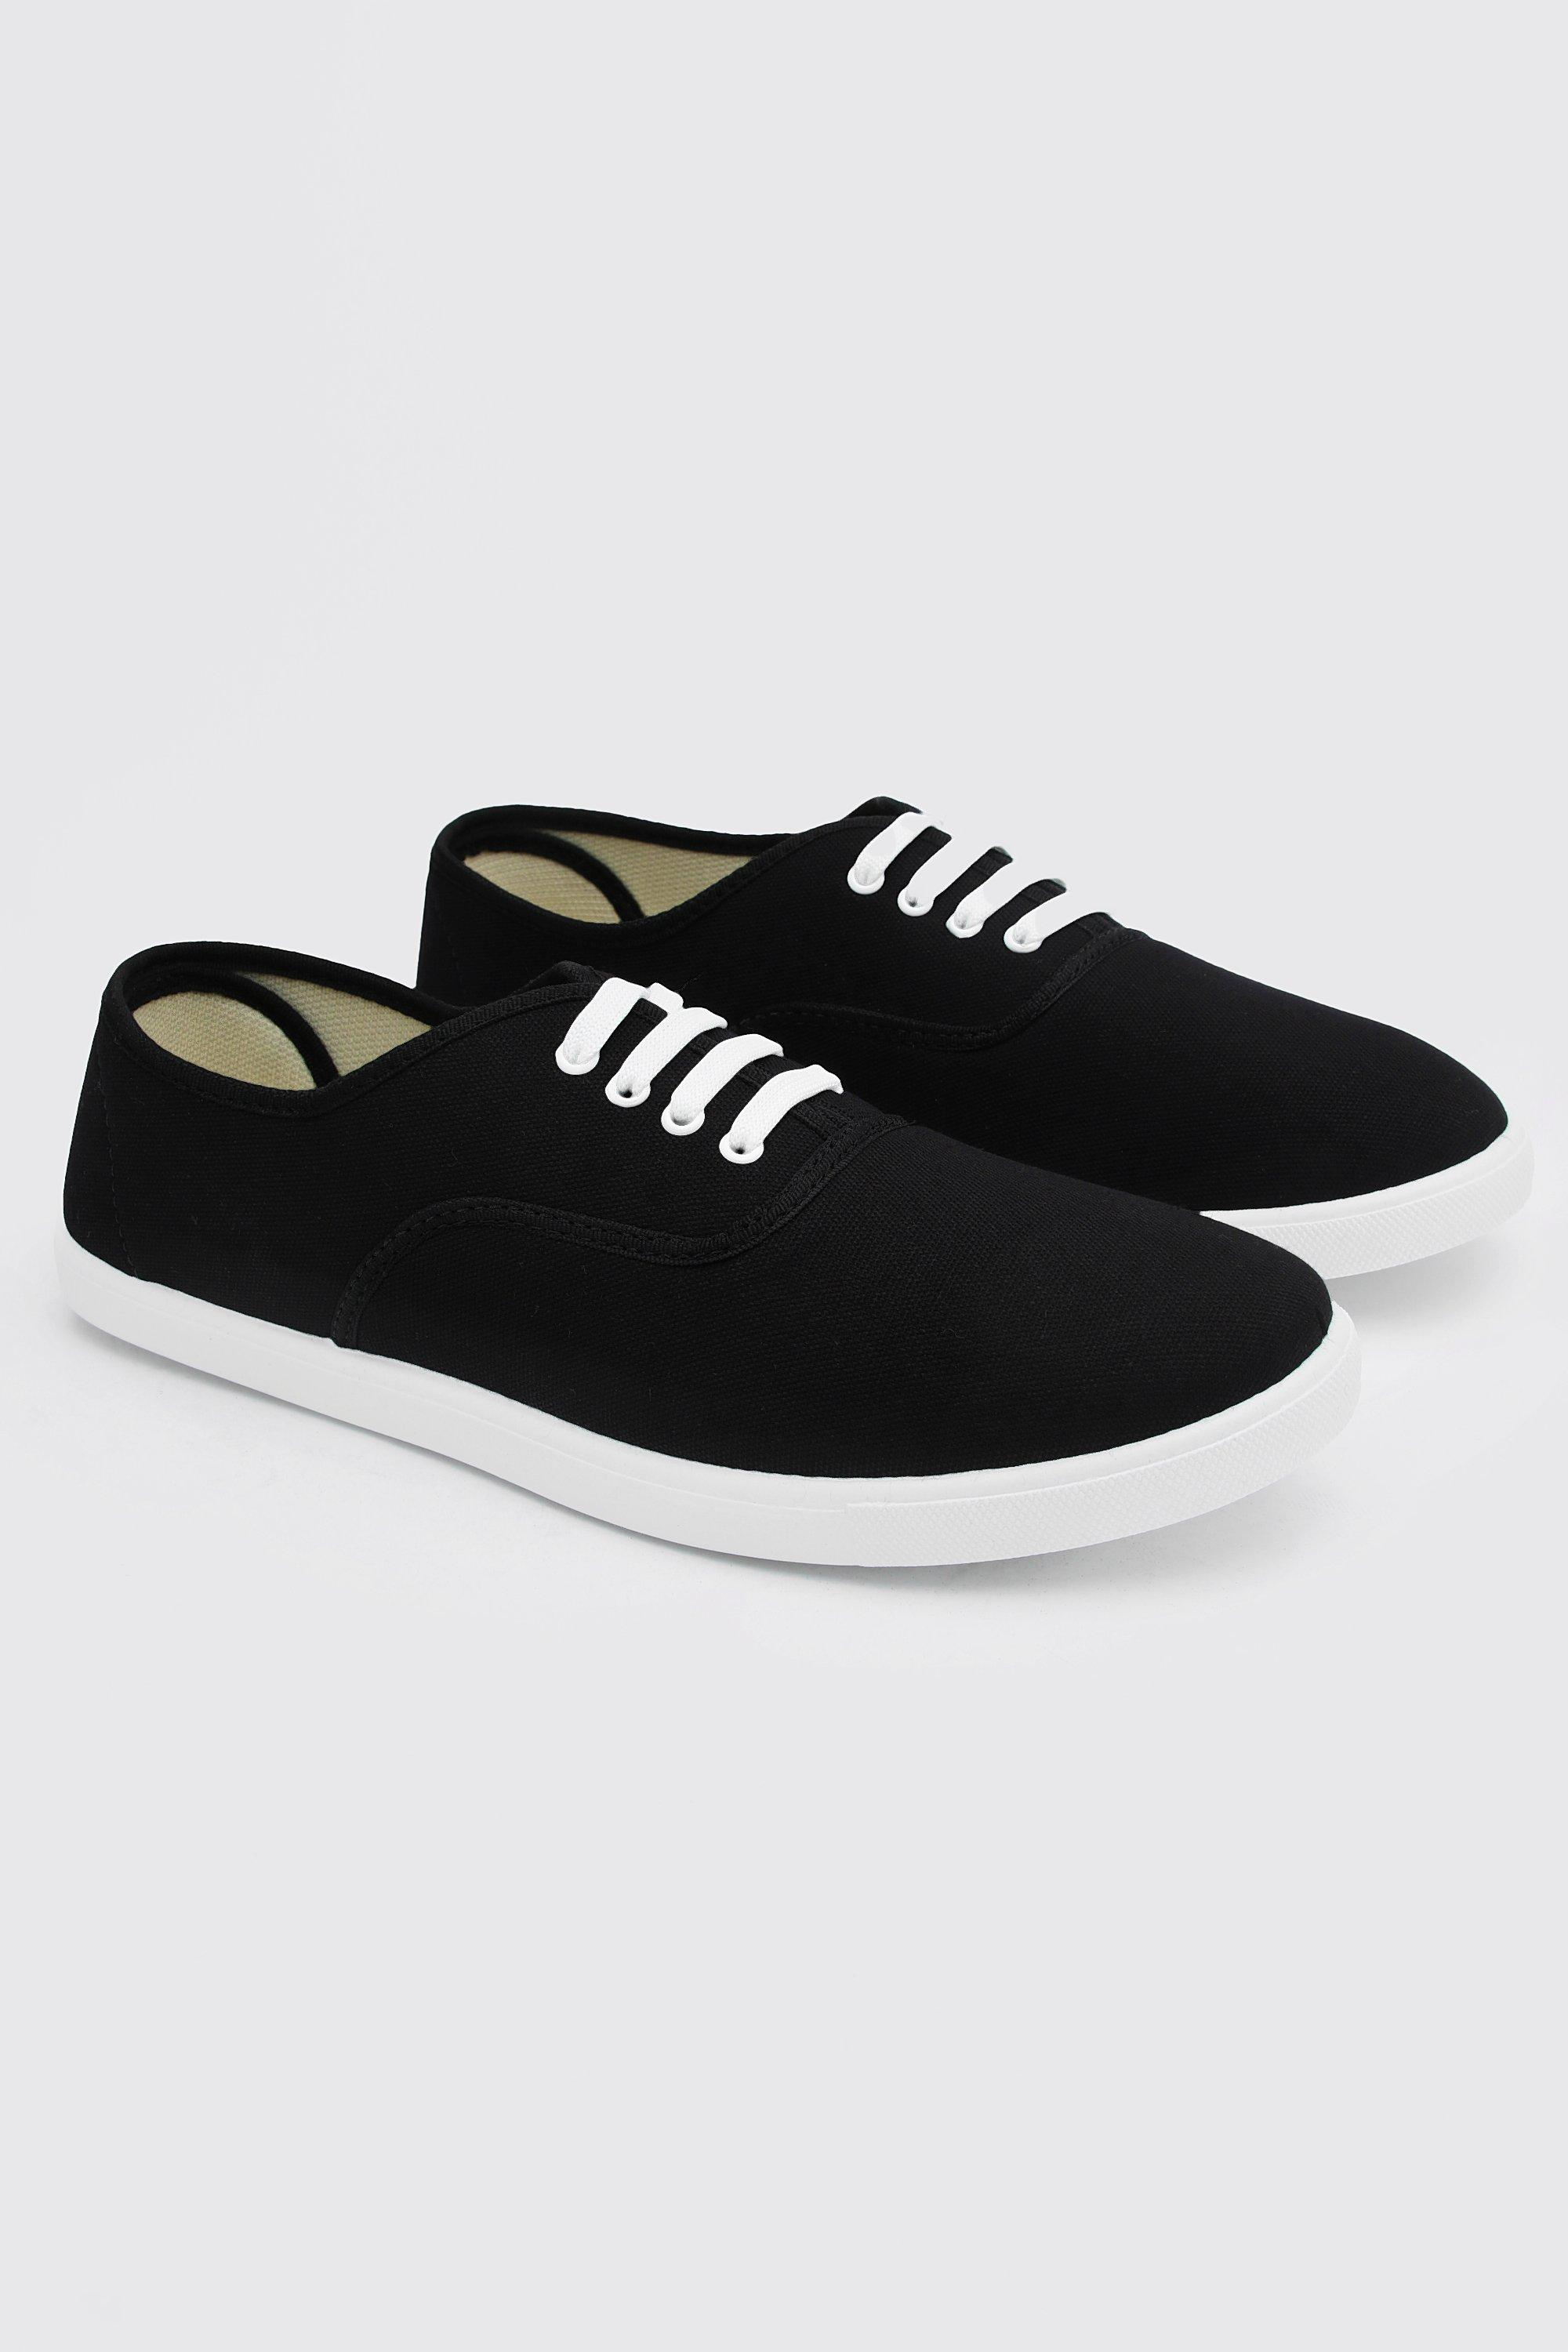 Men's 1950s Shoes Styles- Classics to Saddles to Rockabilly Mens Basic Lace Up Plimsoll - Black $8.40 AT vintagedancer.com